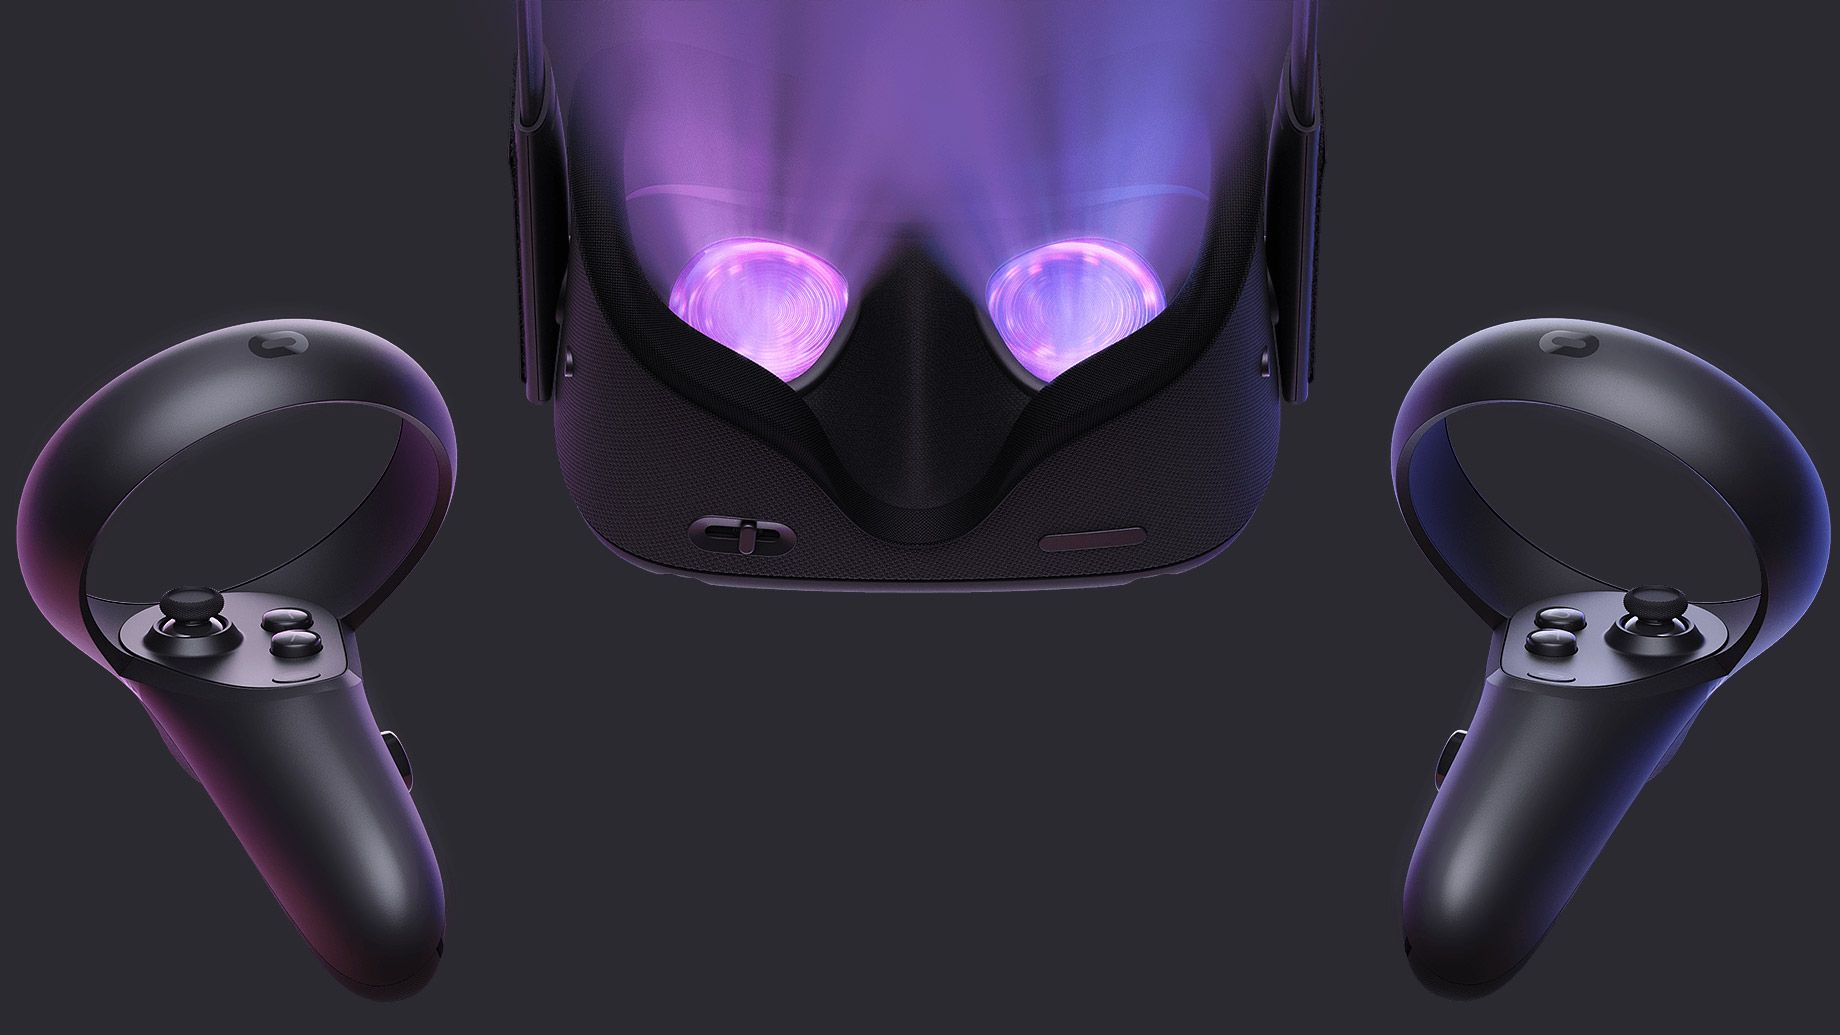 25 Oculus Quest Games Coming In 2019 2020 Road To Vr Oculus Educational Technology Rhythm Games